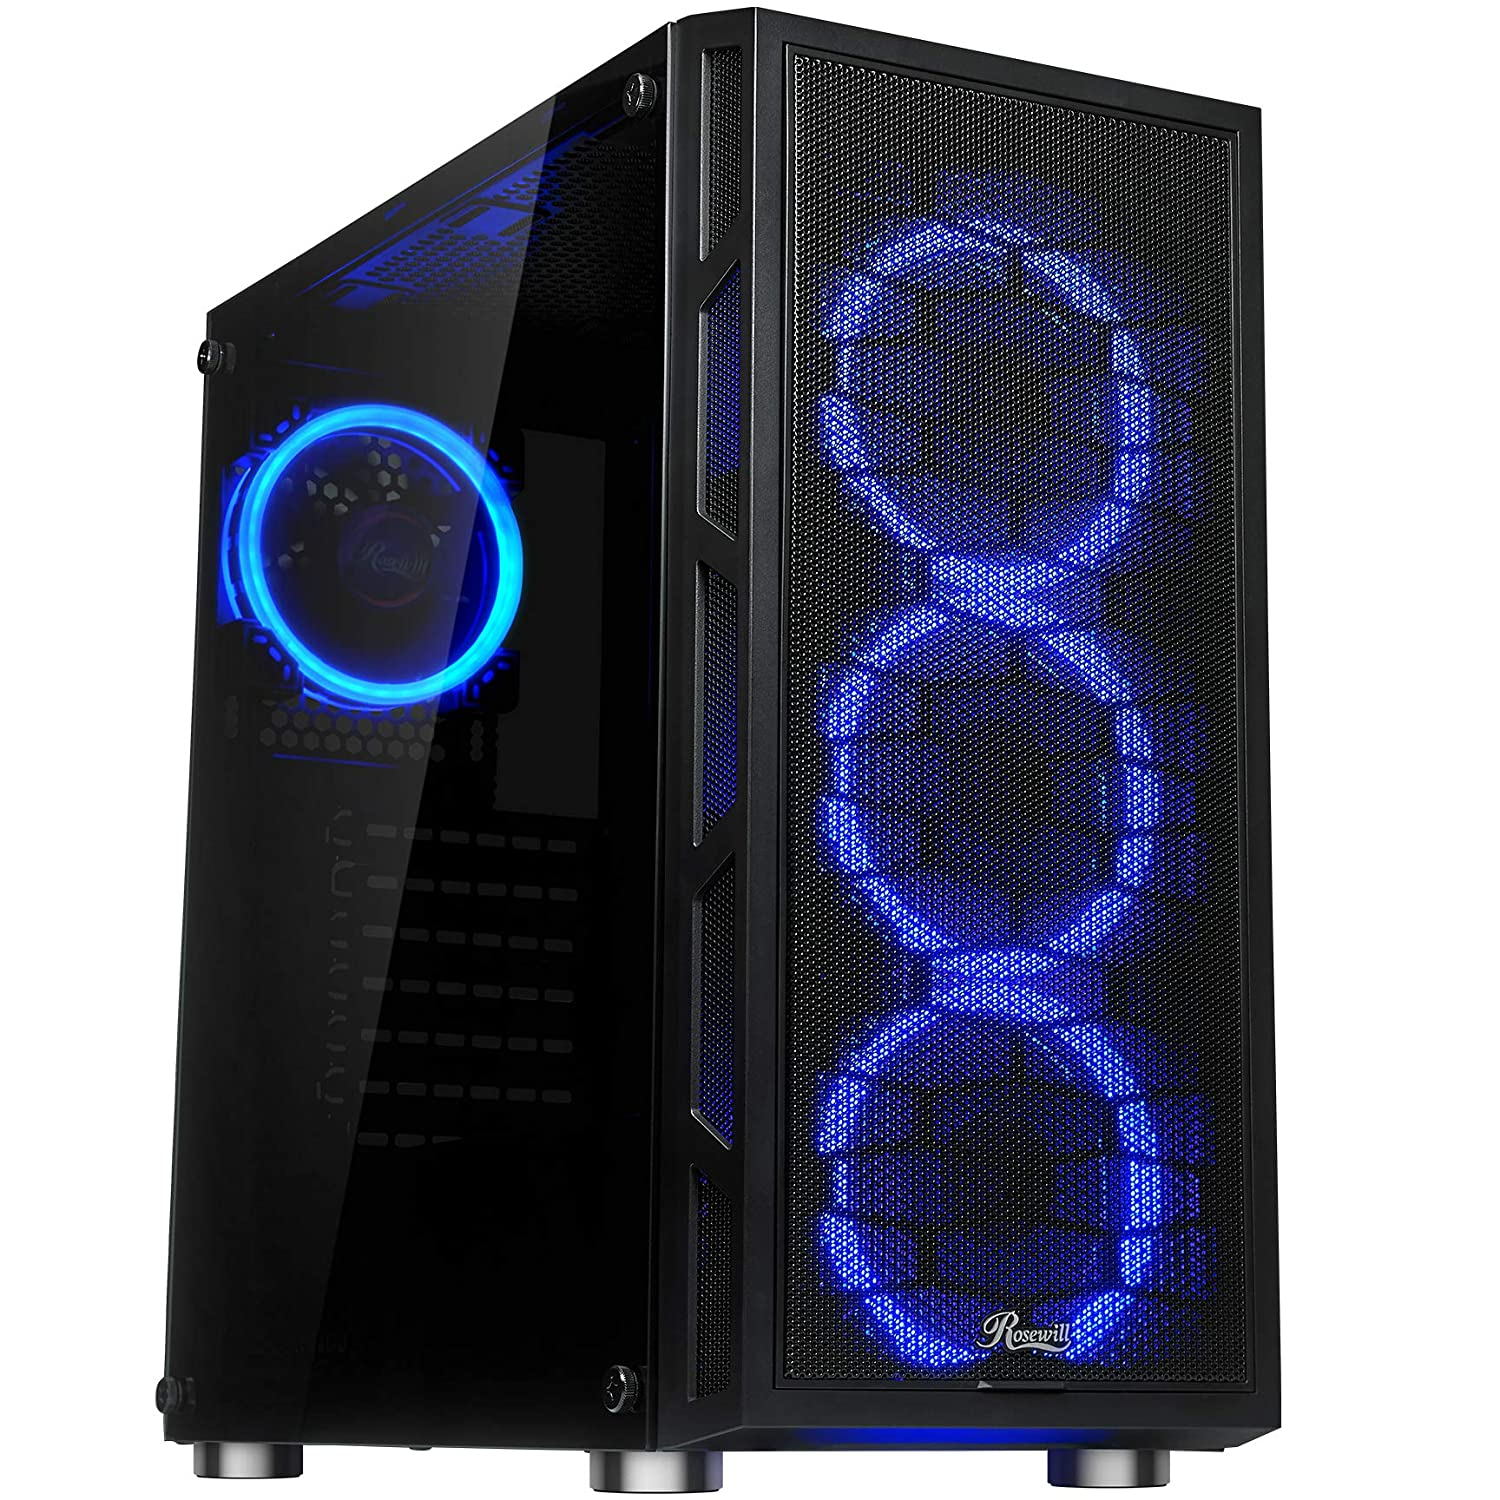 Rosewill ATX Mid Tower Gaming PC Computer Case with Dual Ring Blue LED Fans, 360mm Water Cooling Radiator Support, Tempered Glass and Steel, USB 3.0 - Spectra C100